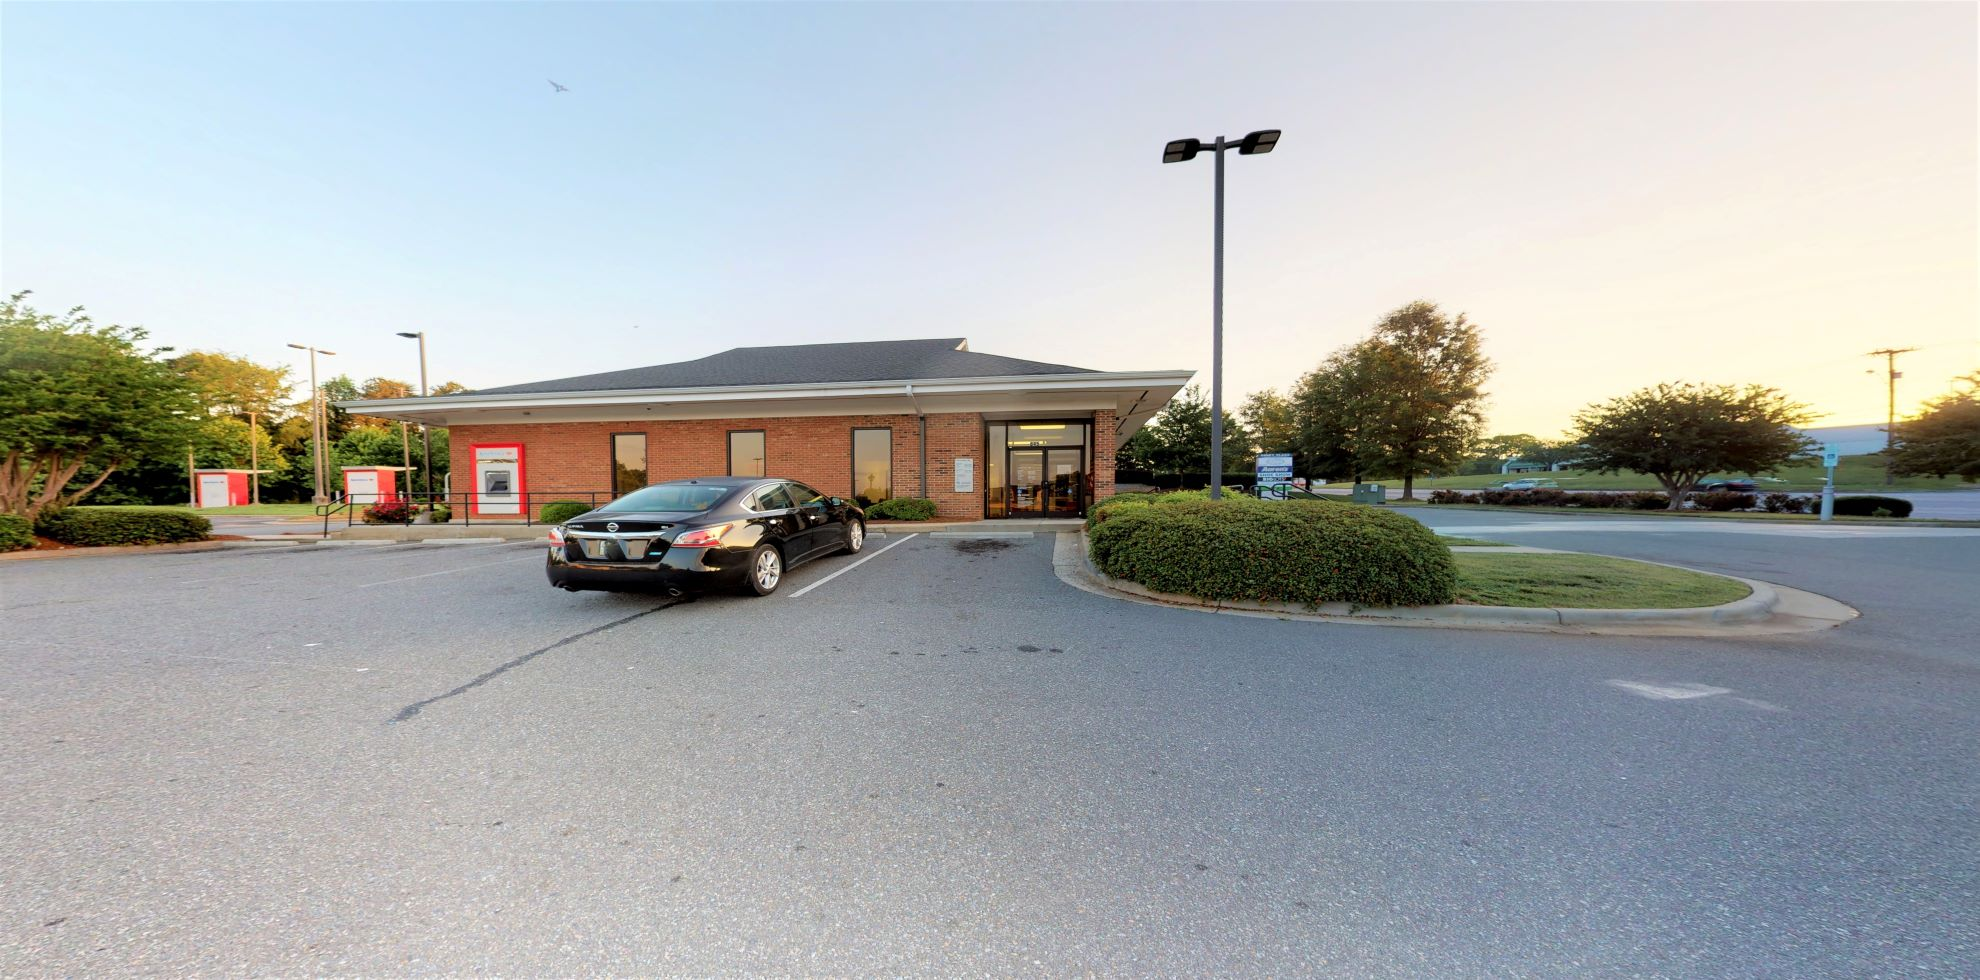 Bank of America financial center with drive-thru ATM | 645 Park St, Belmont, NC 28012